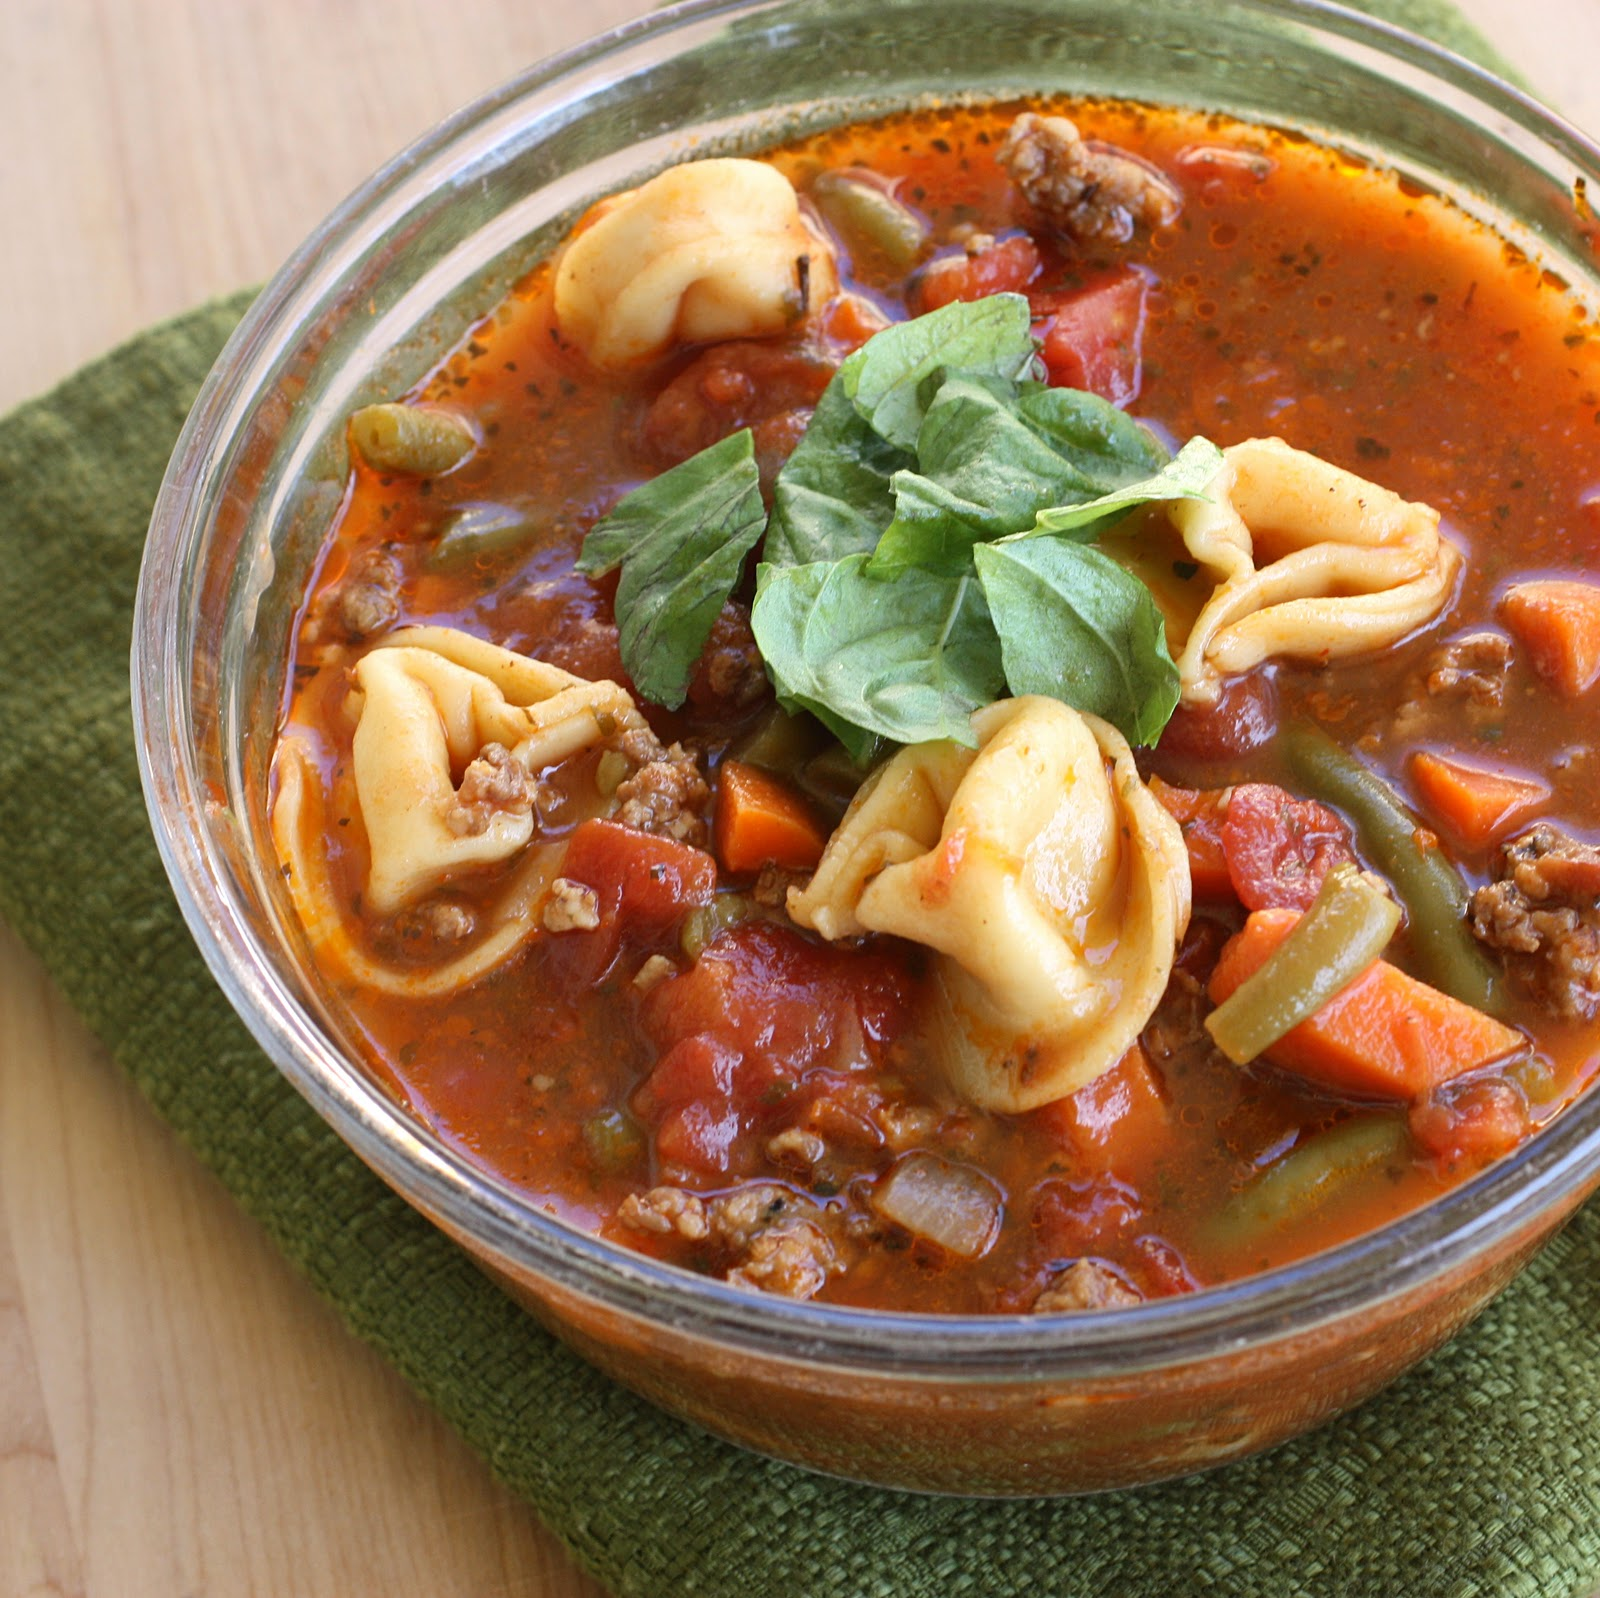 Cheese Tortellini Soup With Turkey Italian Sausage And Kale Recipe ...